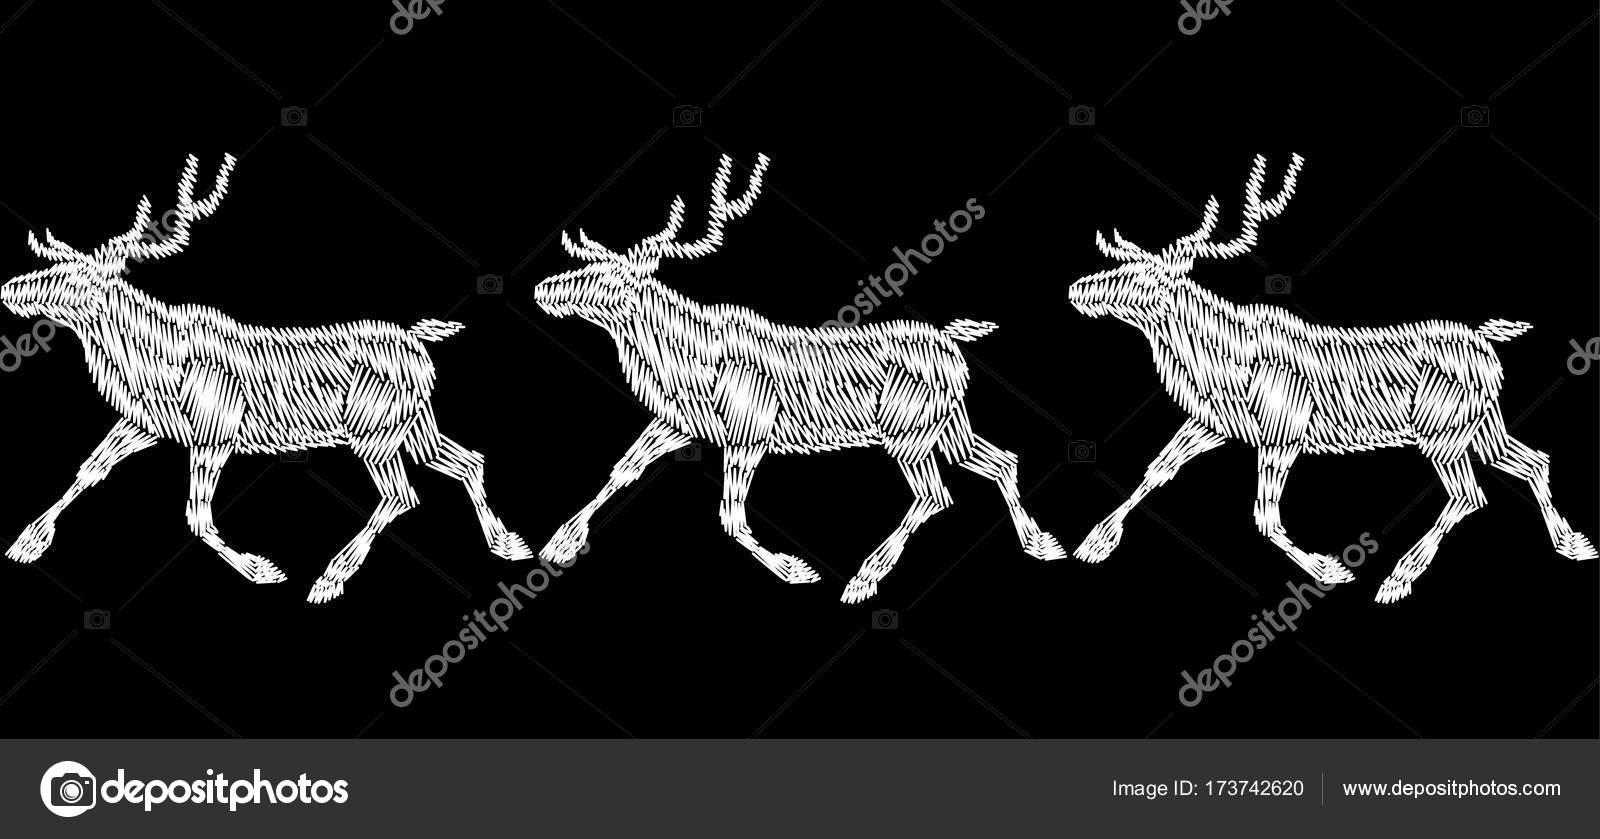 reindeer christmas sleigh gift delivery embroidery seamless bordermonochrome white black new year fashion decoration